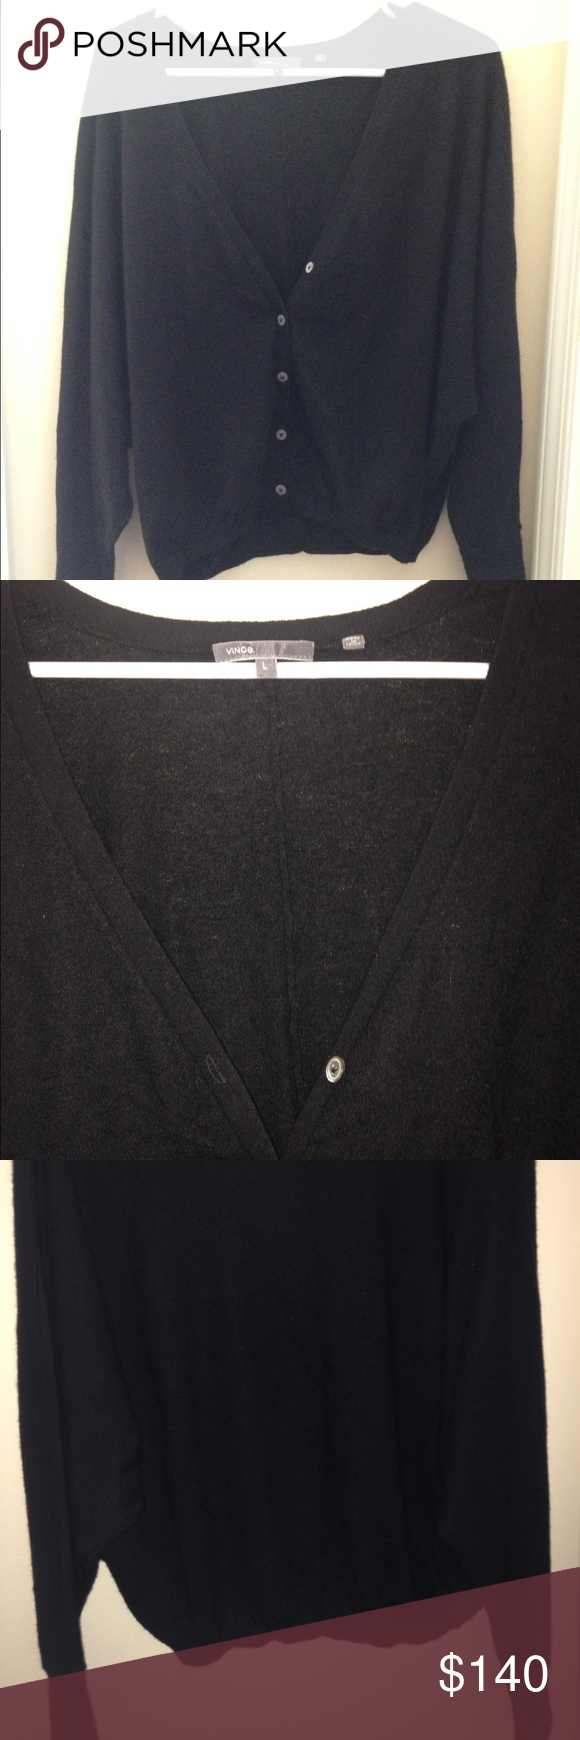 Vince cashmere cardigan Classic black cardigan. 100% cashmere. Barely worn Vince Sweaters Cardigans